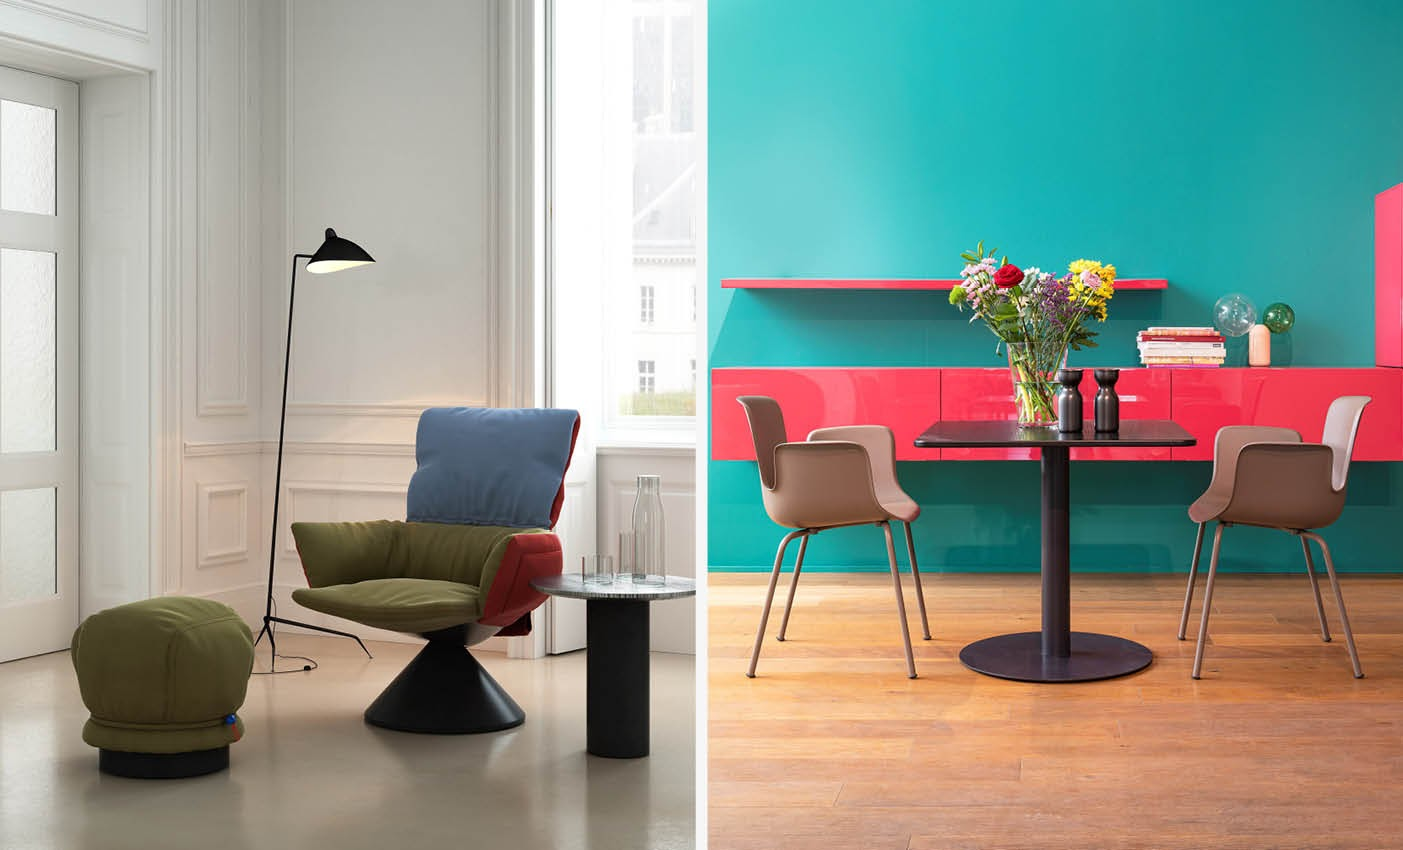 new collection presented by cappellini during Milan design week 2020